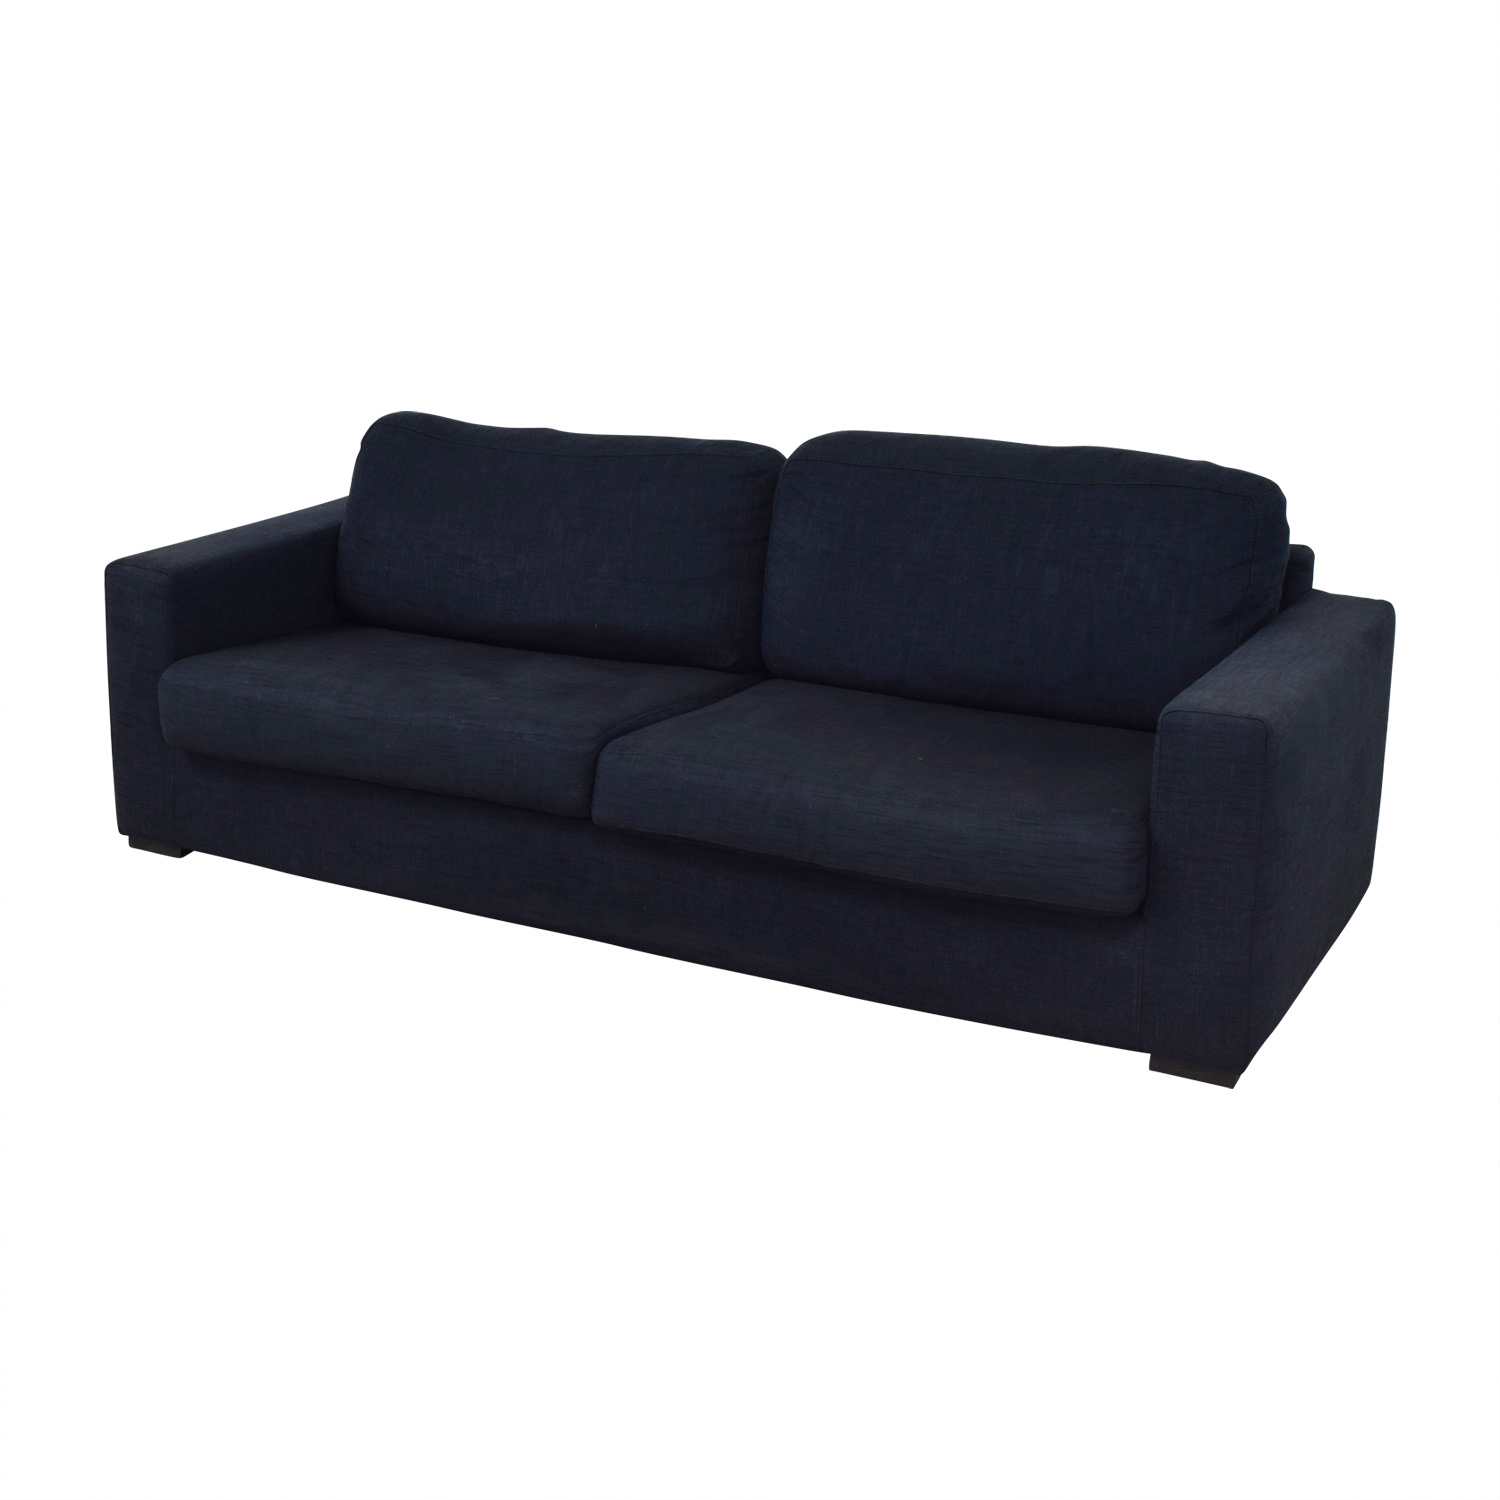 Meridiani Meridiani Italian Navy Linen Two-Cushion Couch discount